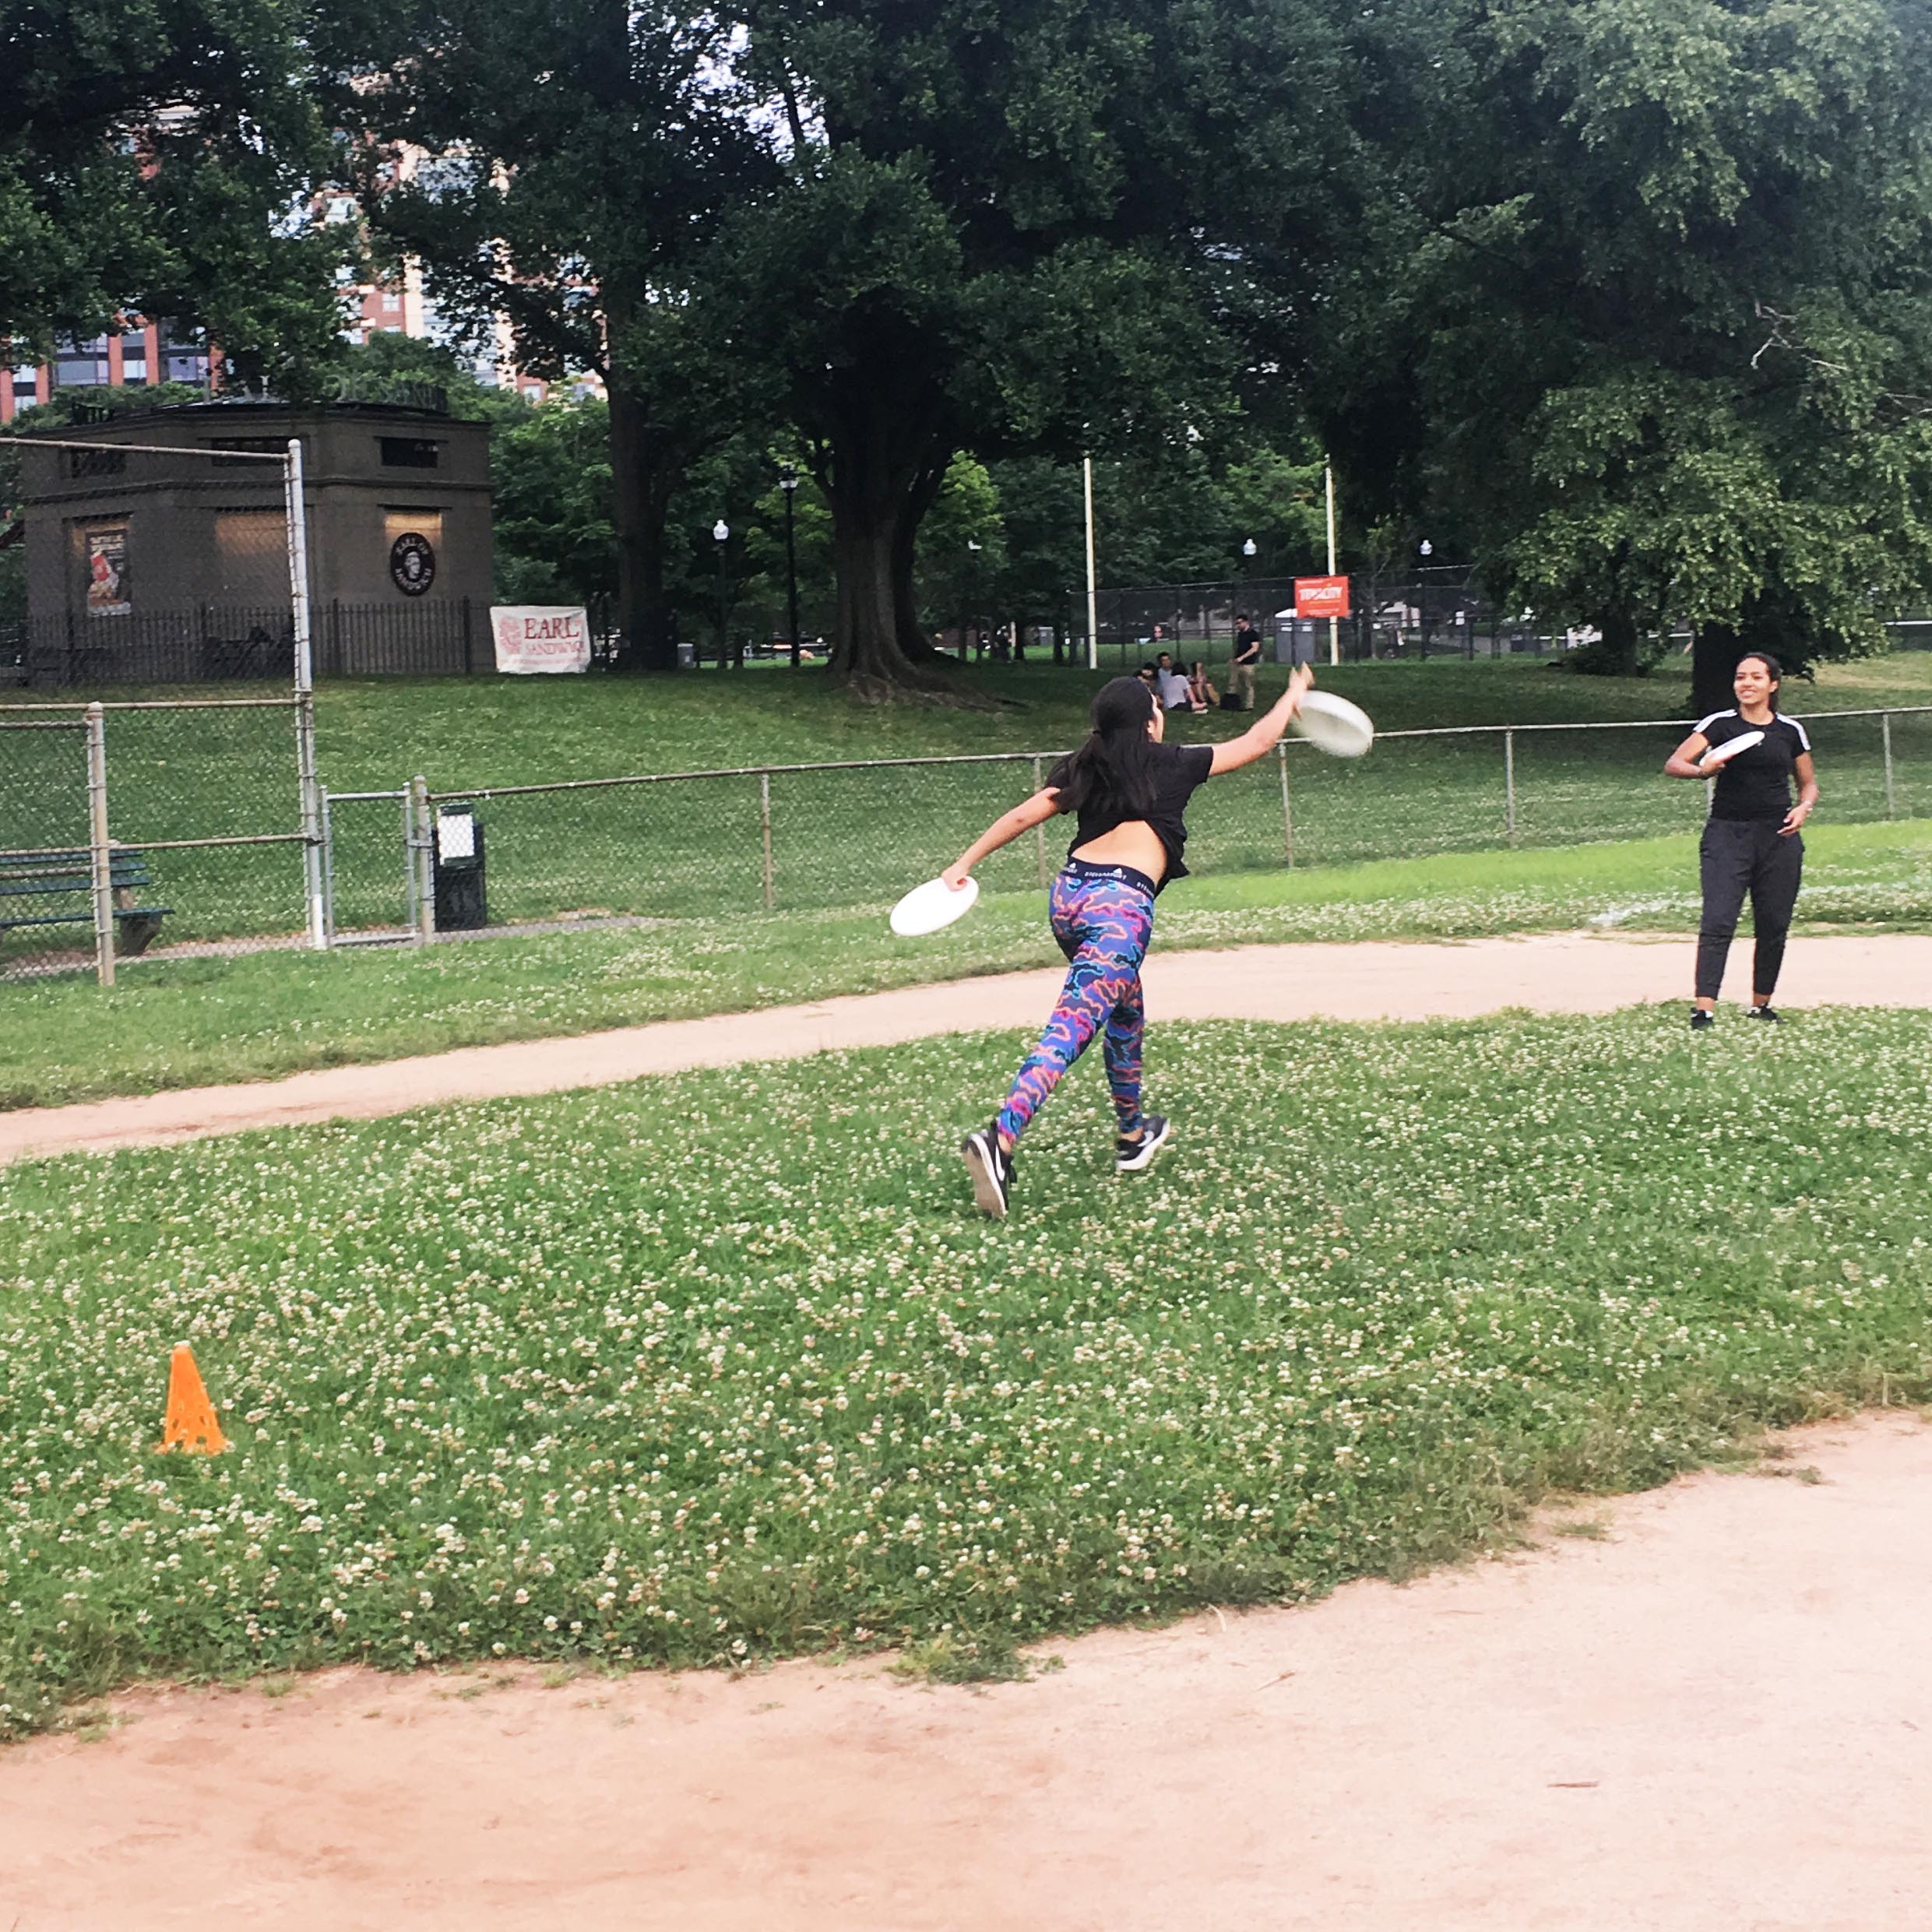 The innovators practicing Ultimate Frisbee at Boston Common